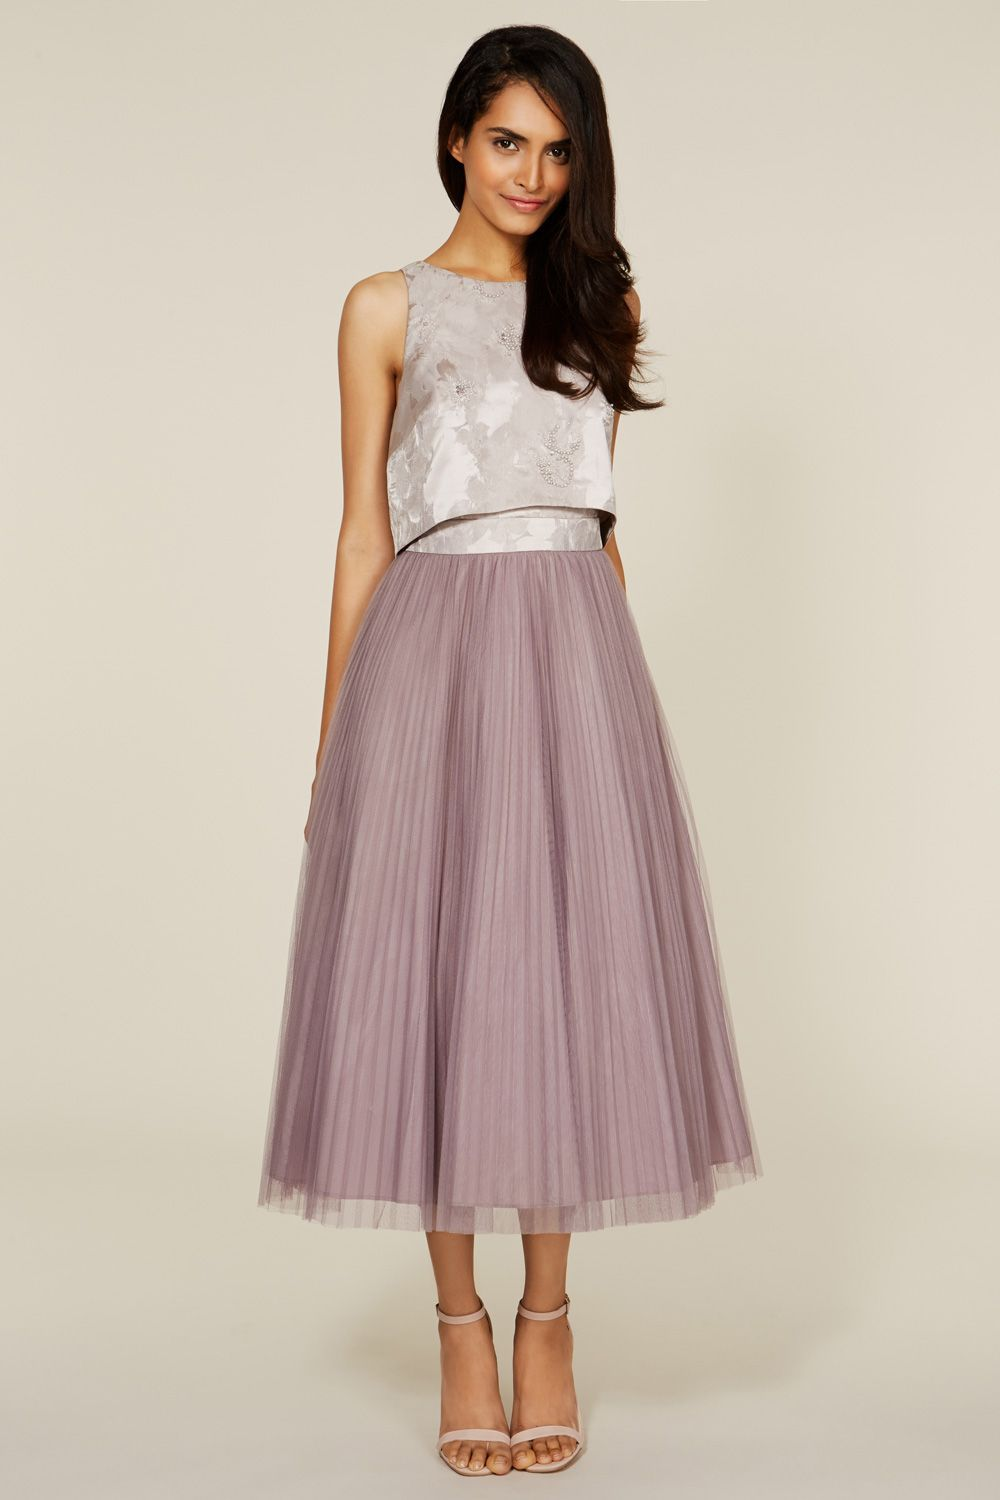 Harven midi dress sl wedding pinterest midi dresses winter shop online for the latest in womens occasion wear accessories bridesmaid dresses ombrellifo Image collections